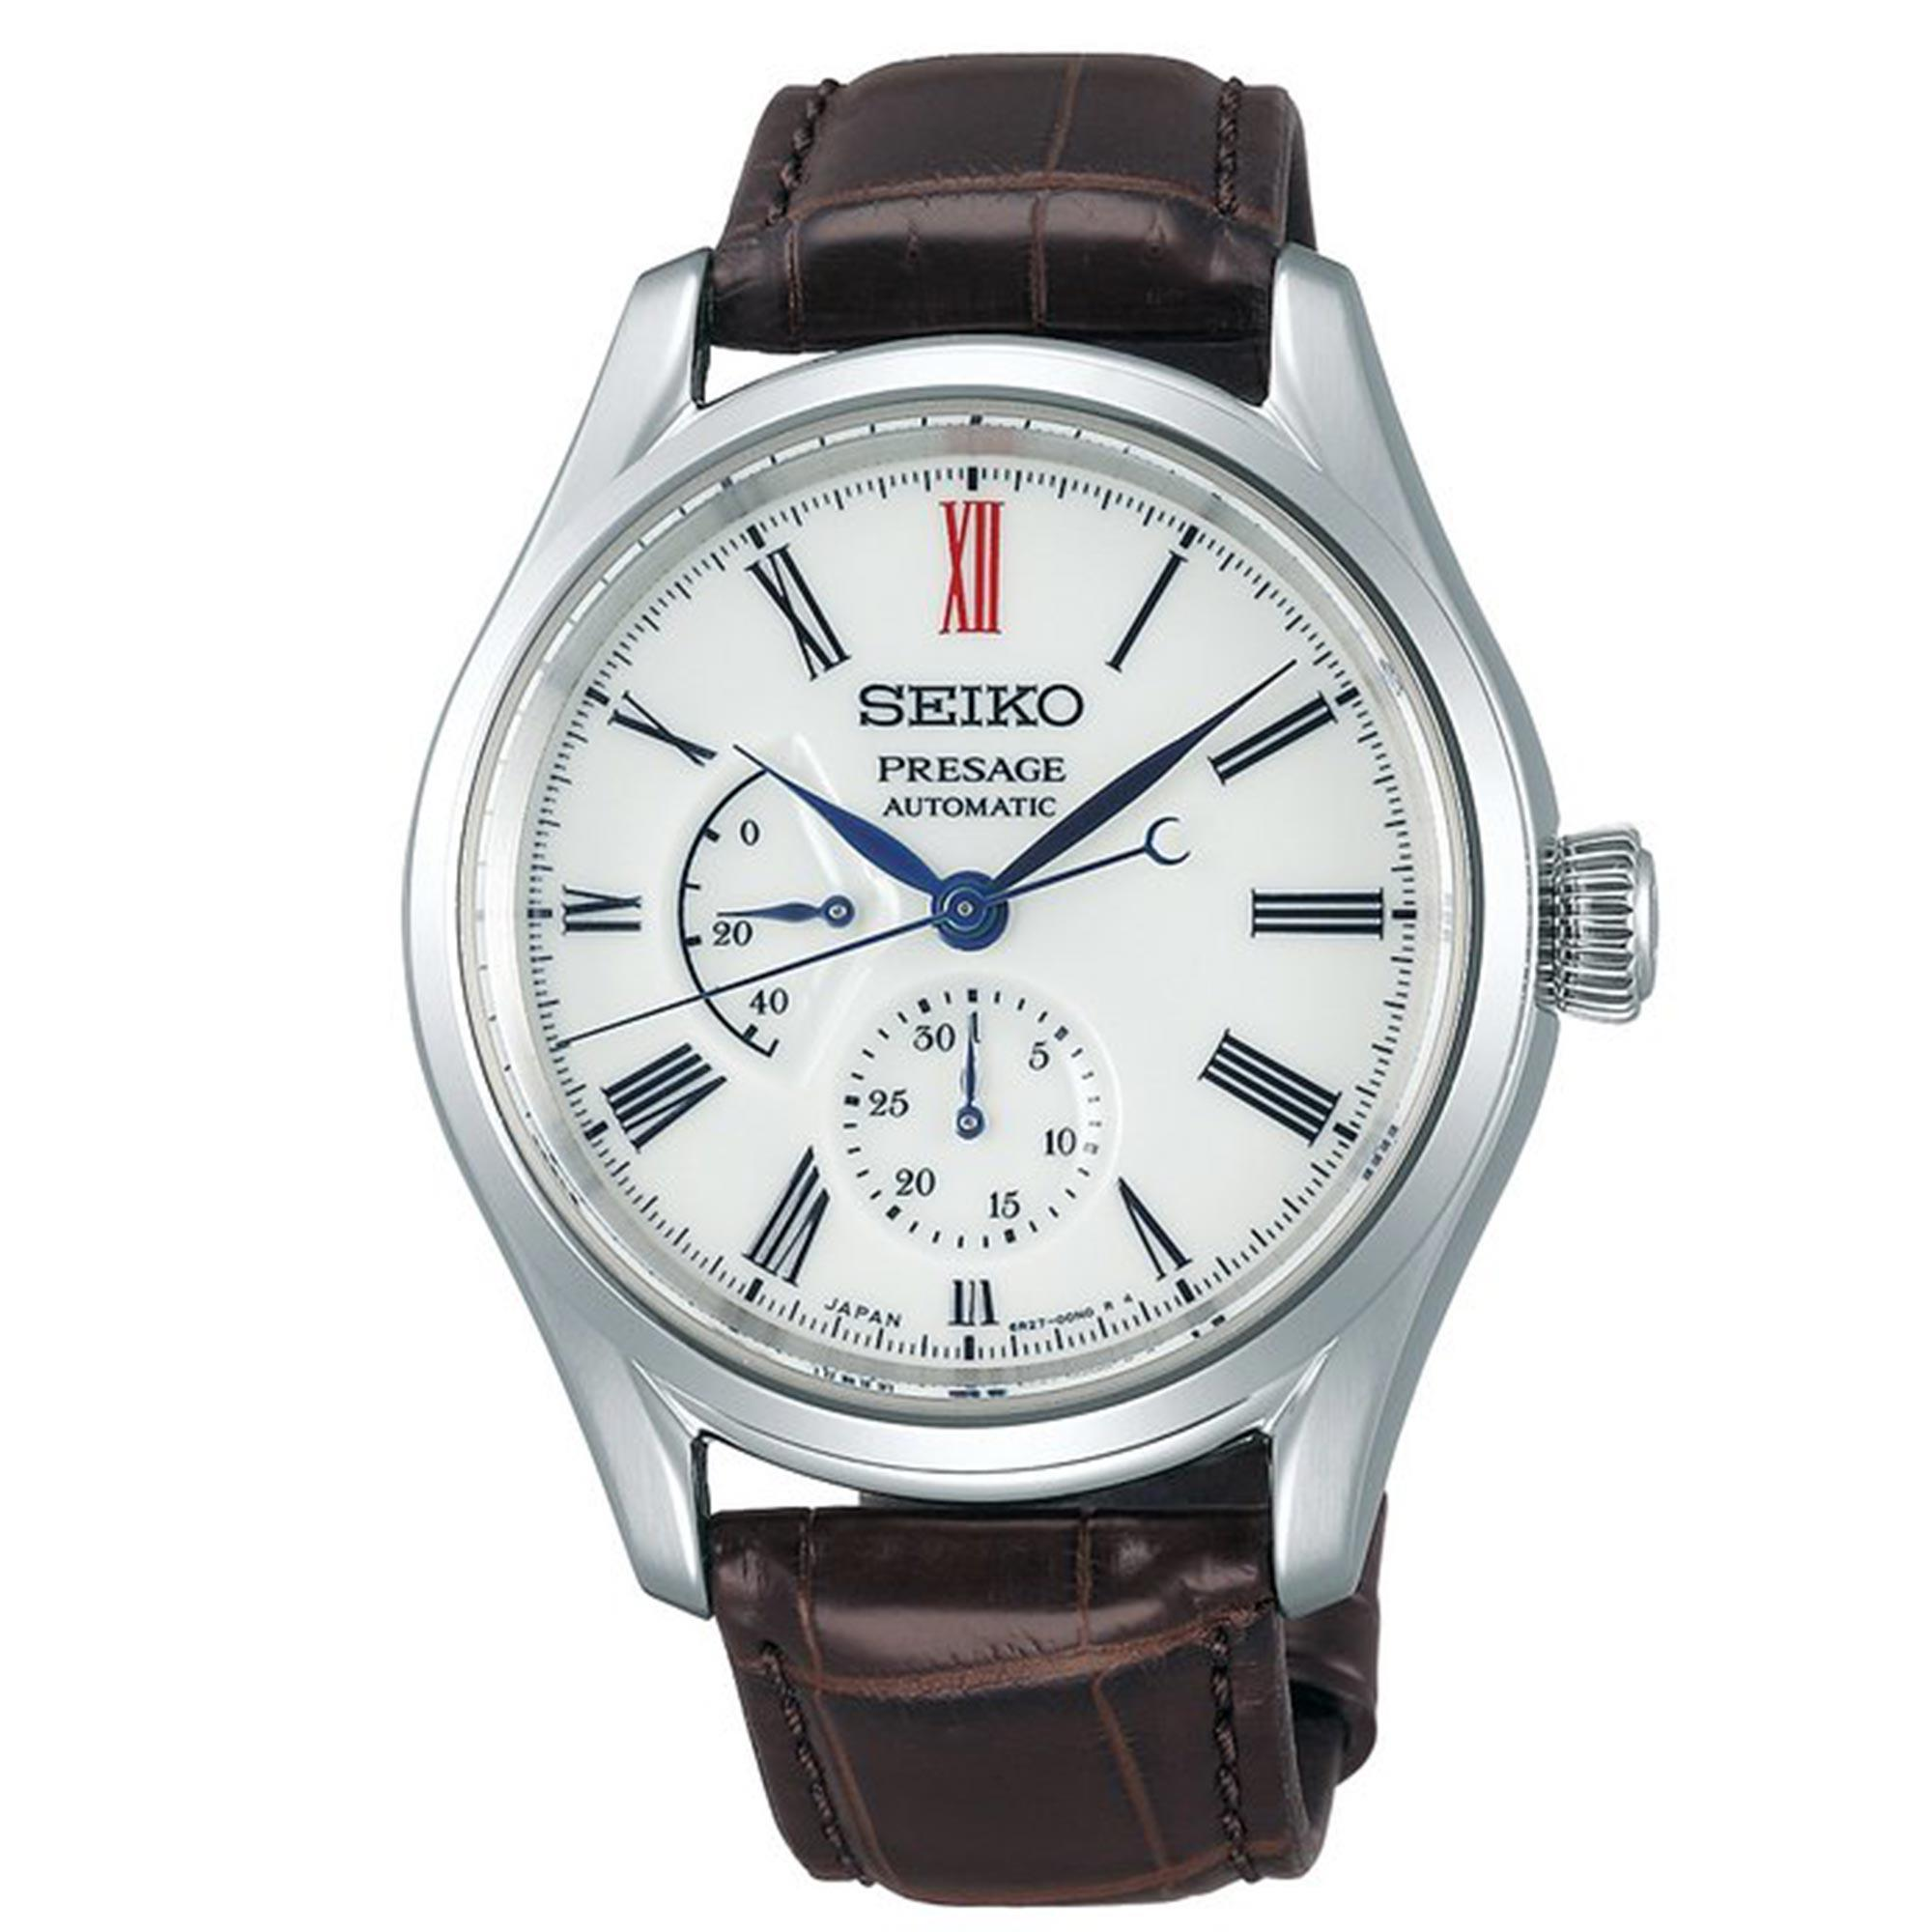 Seiko Presage Automatic Arita Porcelain White Dial Brown Leather Strap Men's Watch SPB093J1 RRP £1,750